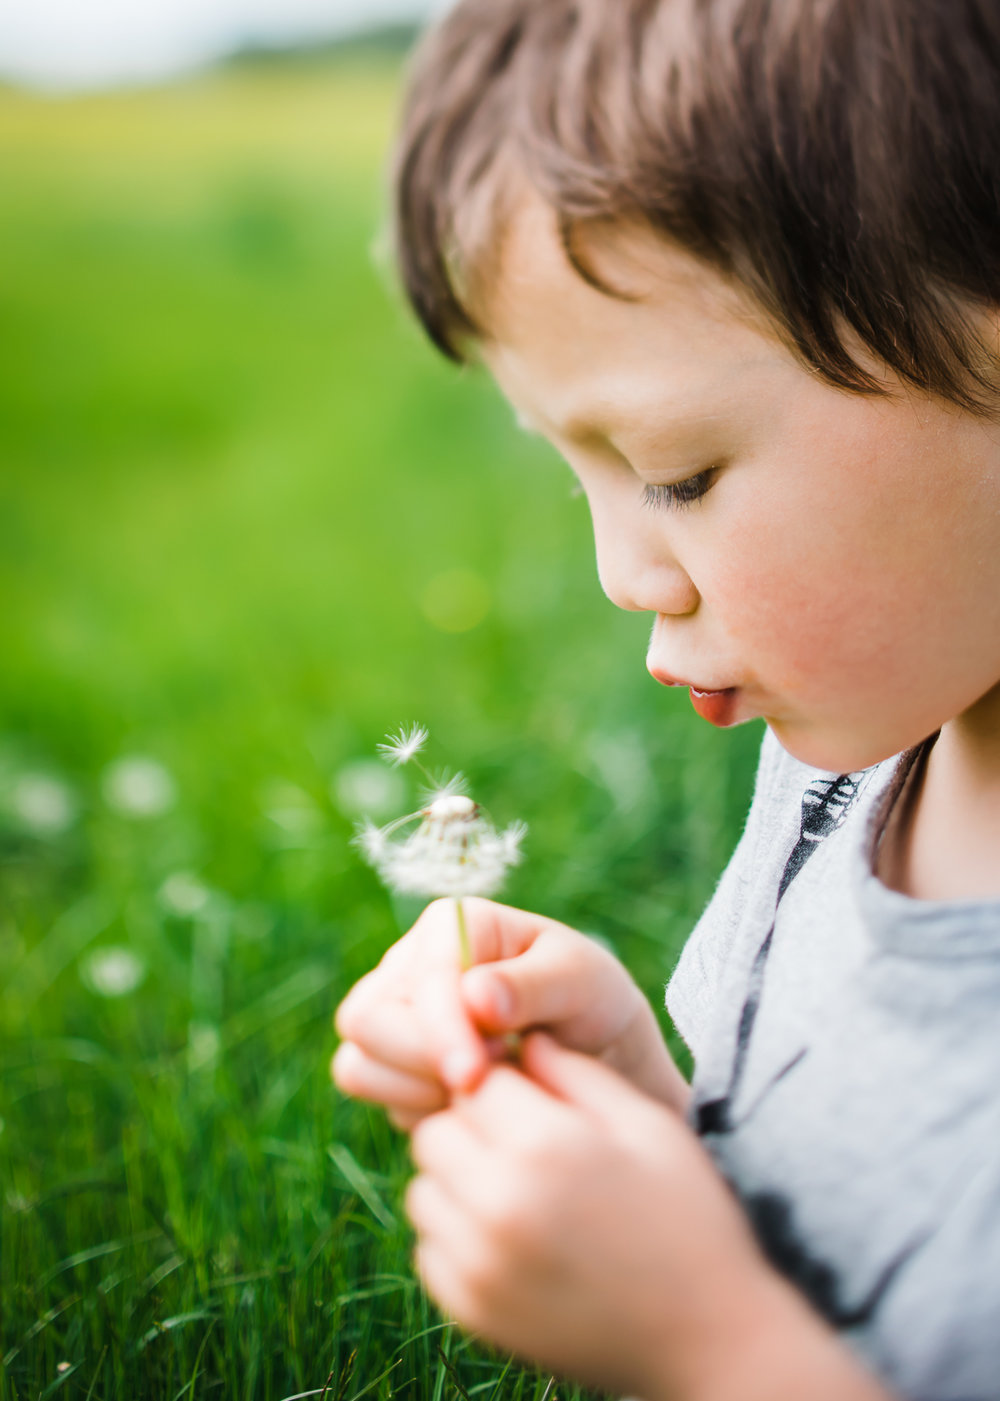 Child blowing dandelion in grassy field